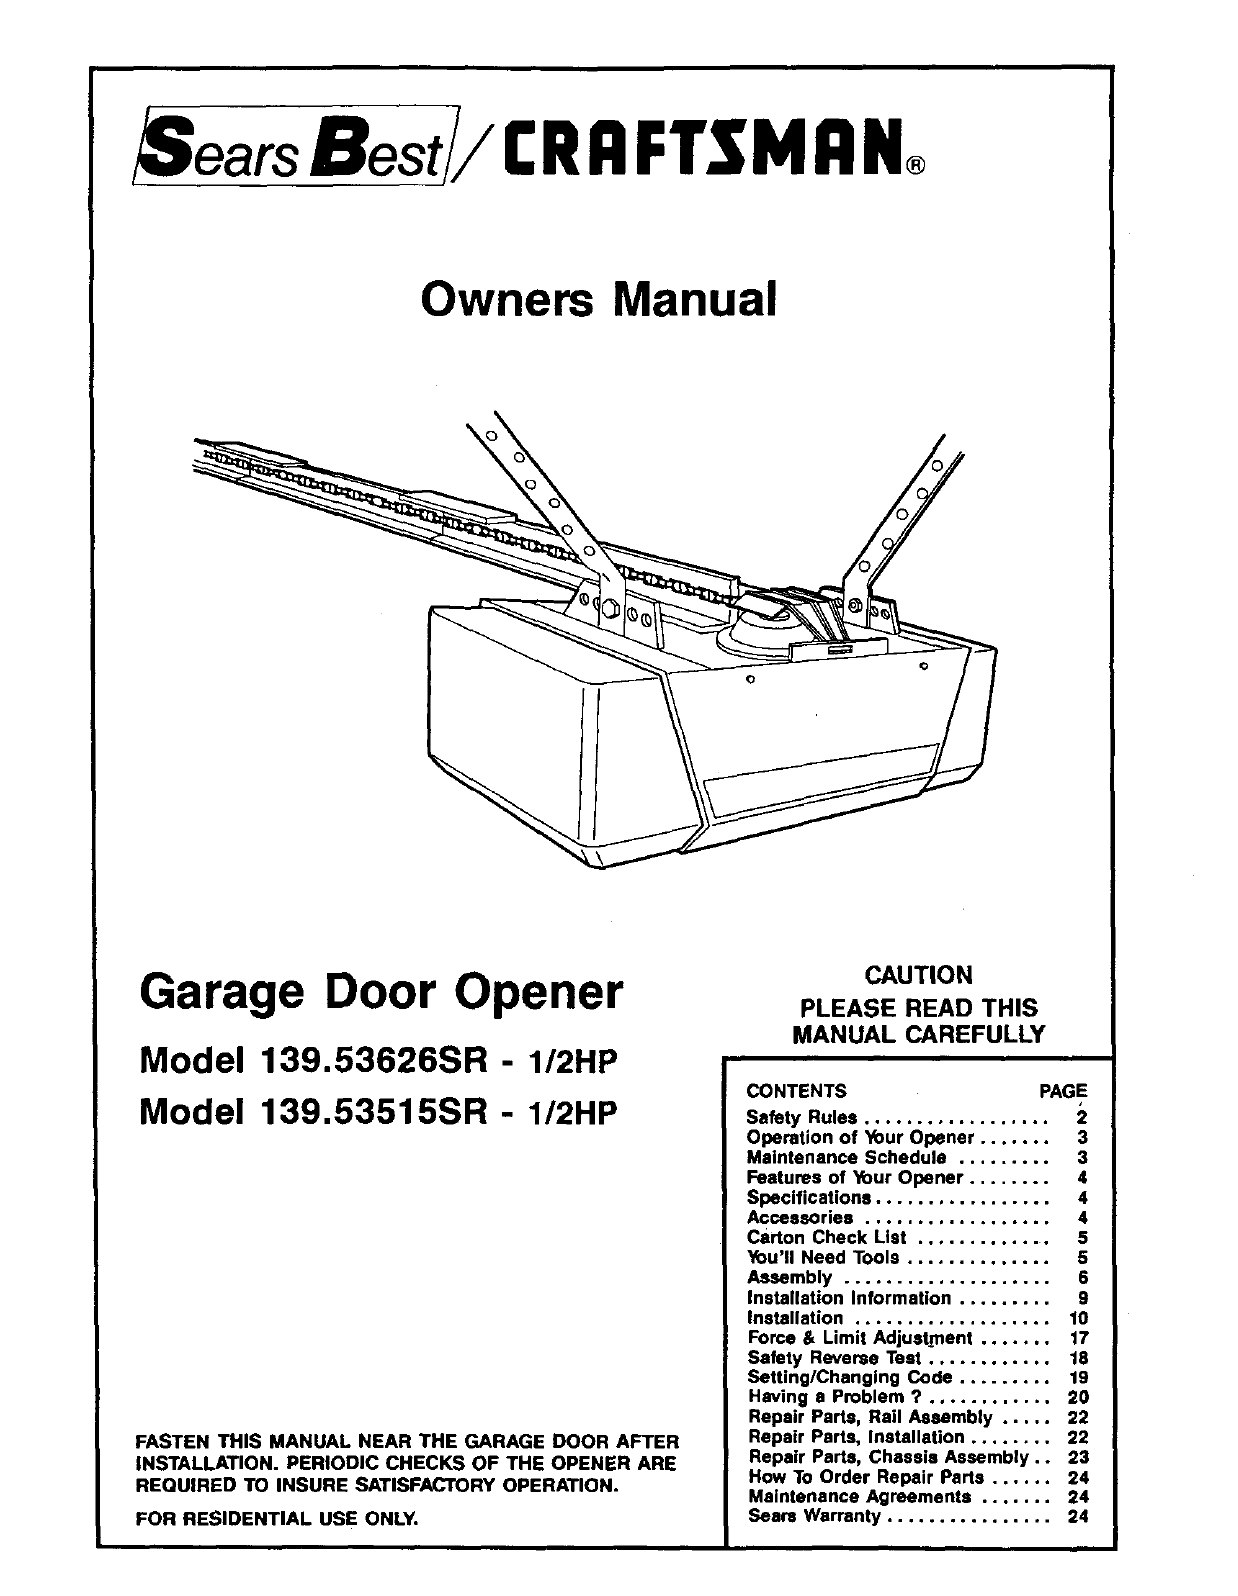 6e97bce9 7ab4 4d1d 9173 64e7868174d5 bg1 craftsman garage door opener 139 53515sr i 2hp user guide craftsman garage door opener sensor wiring diagram at mifinder.co